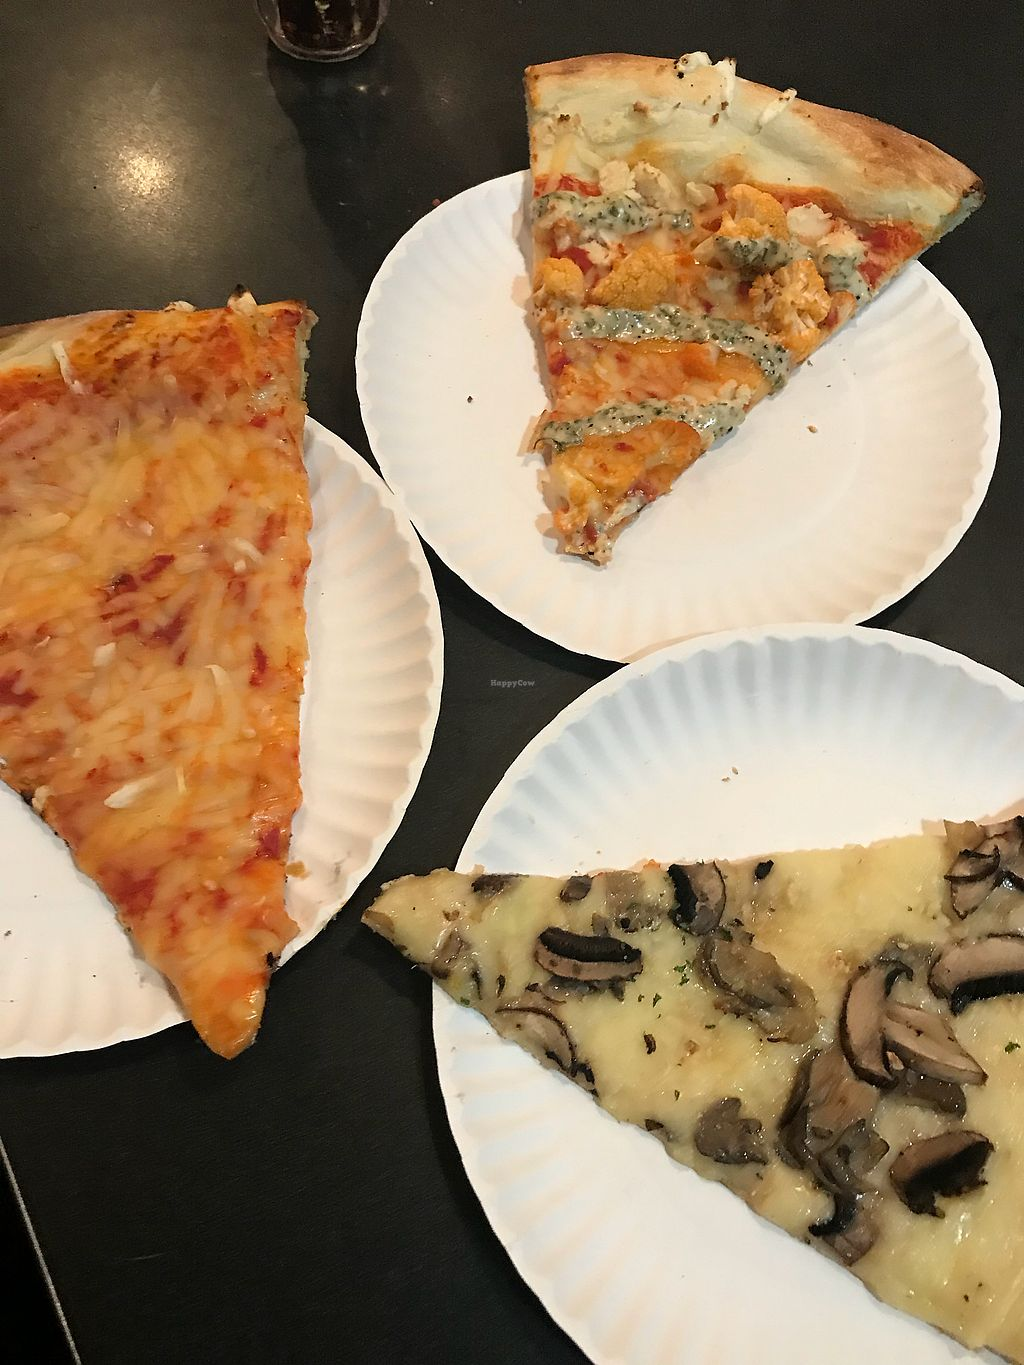 "Photo of Screamer's Pizzeria  by <a href=""/members/profile/KerryElise"">KerryElise</a> <br/>From left to right: cheese, buffalo cauliflower, white pie w/mushrooms  <br/> October 16, 2017  - <a href='/contact/abuse/image/75081/315835'>Report</a>"